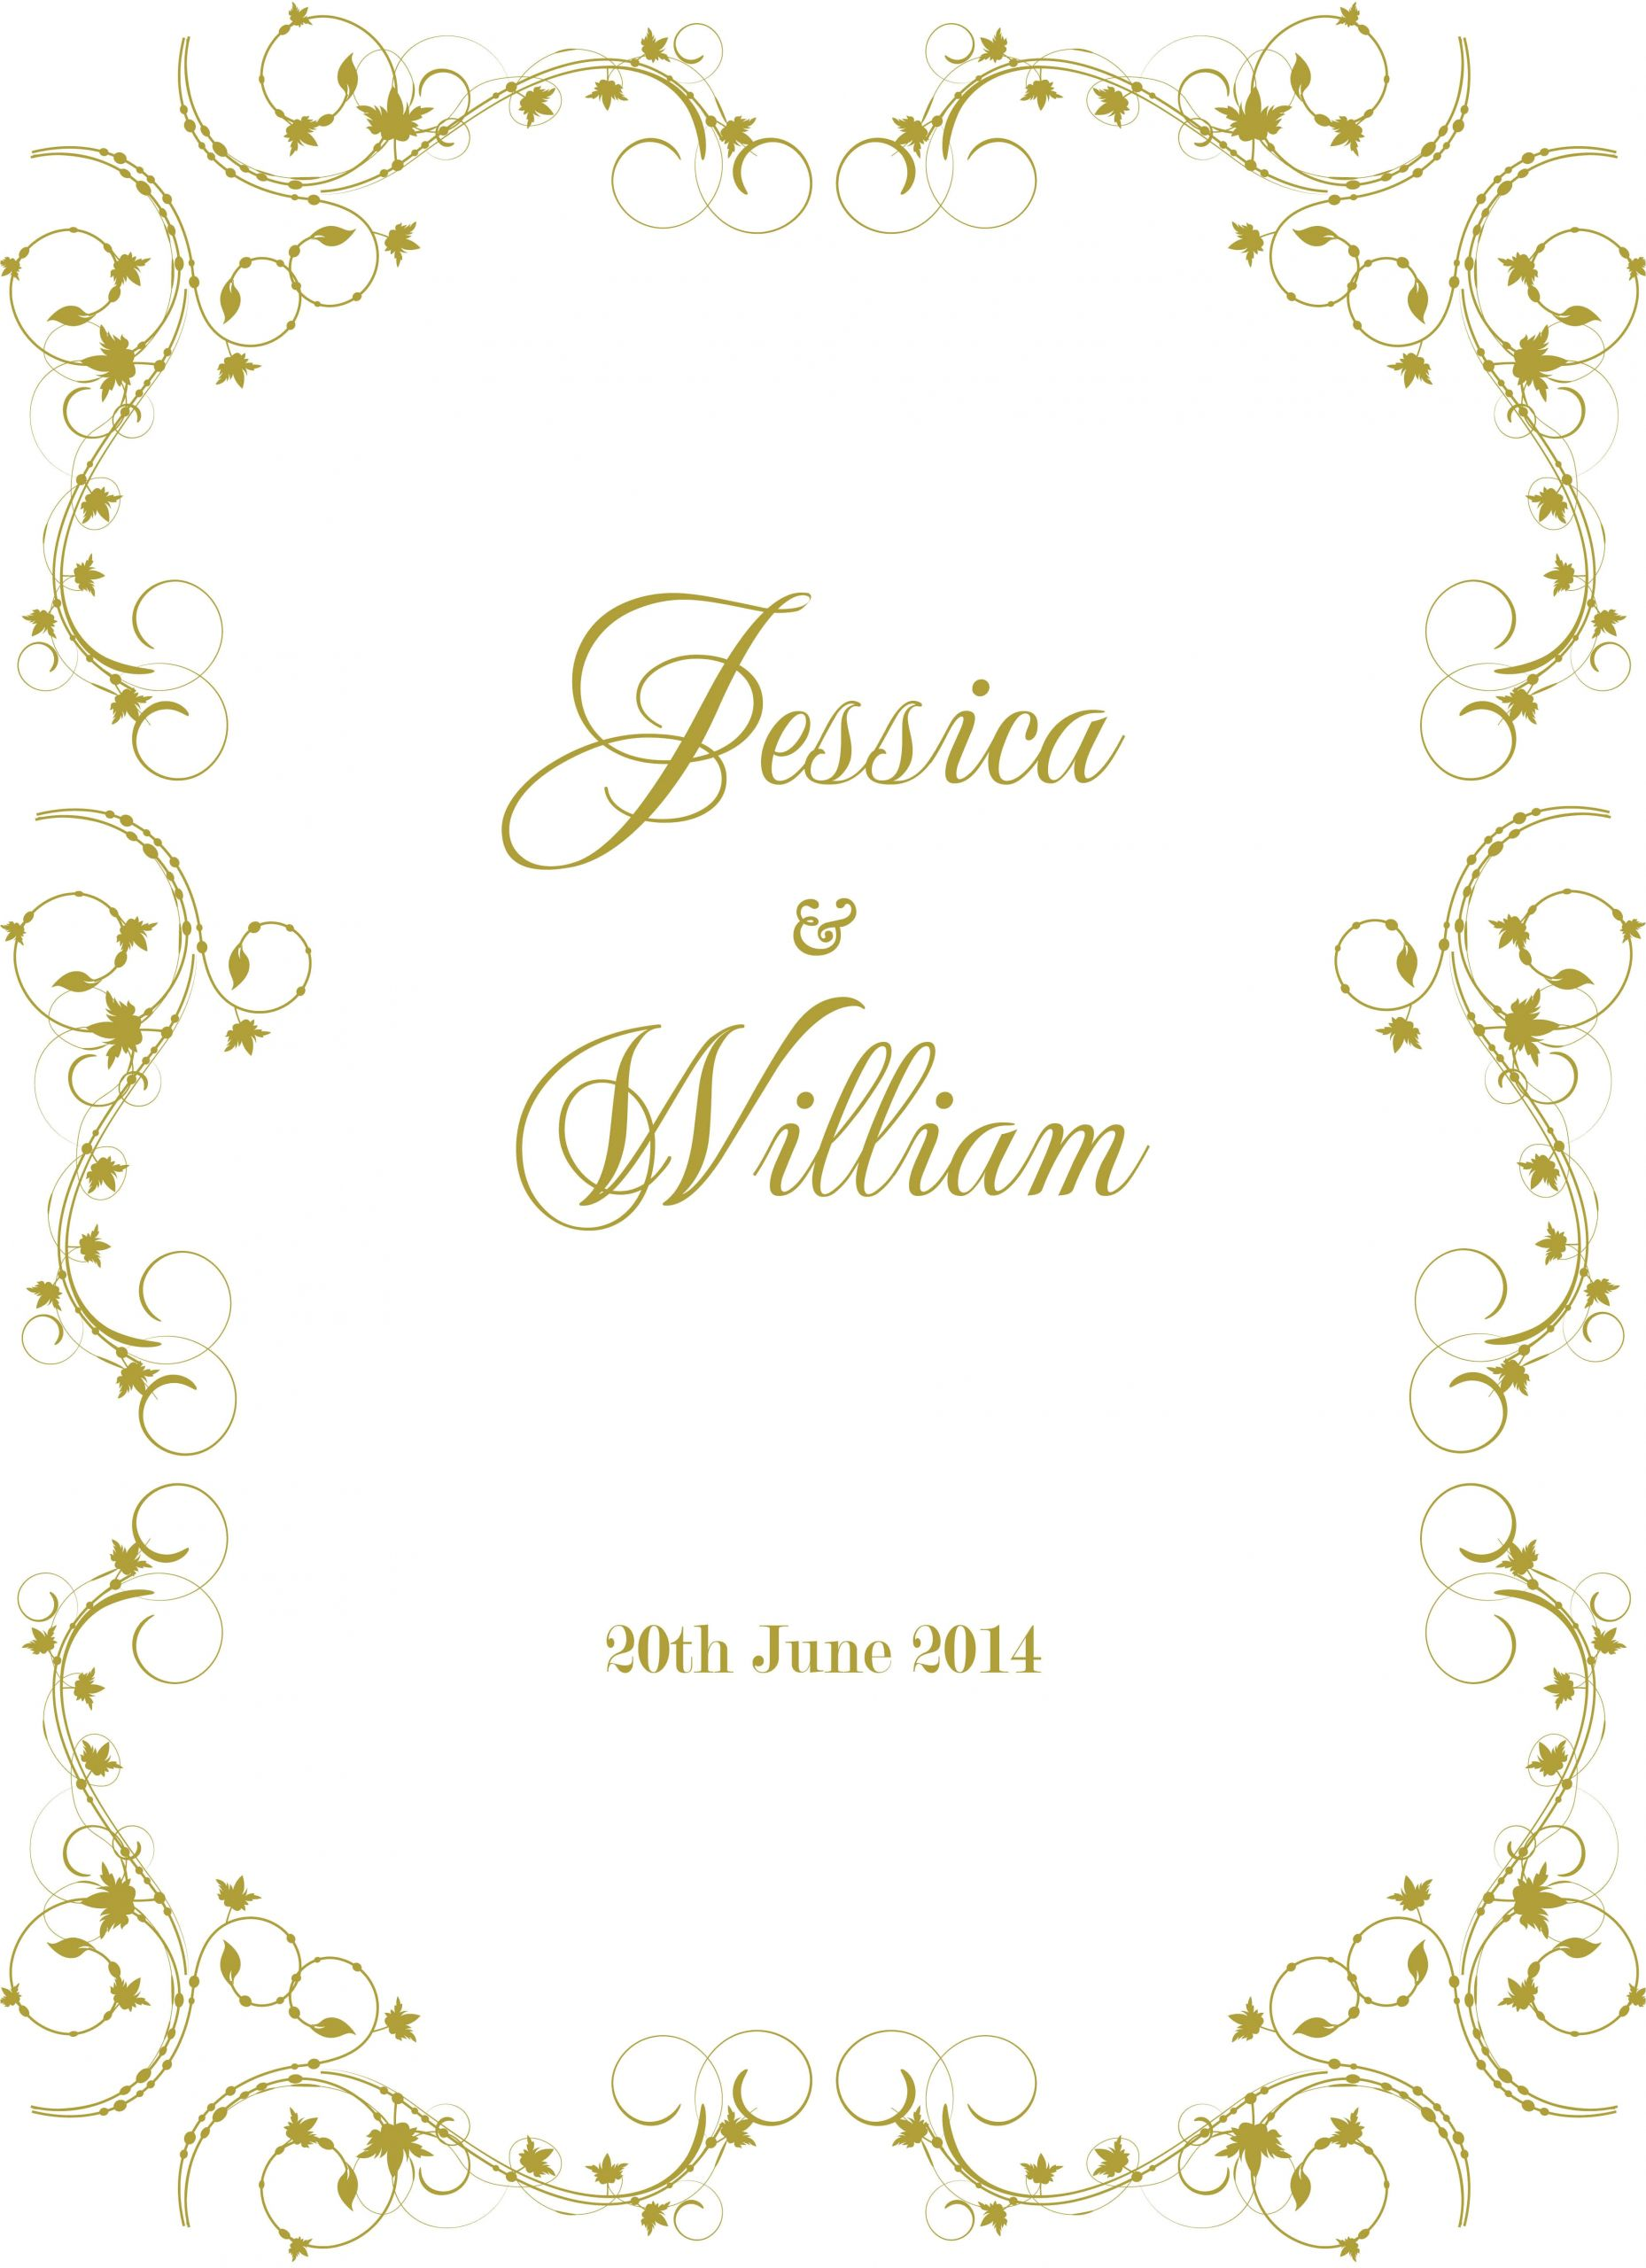 Border Images for Wedding Card Wedding Border Designs with Images Photo Wedding